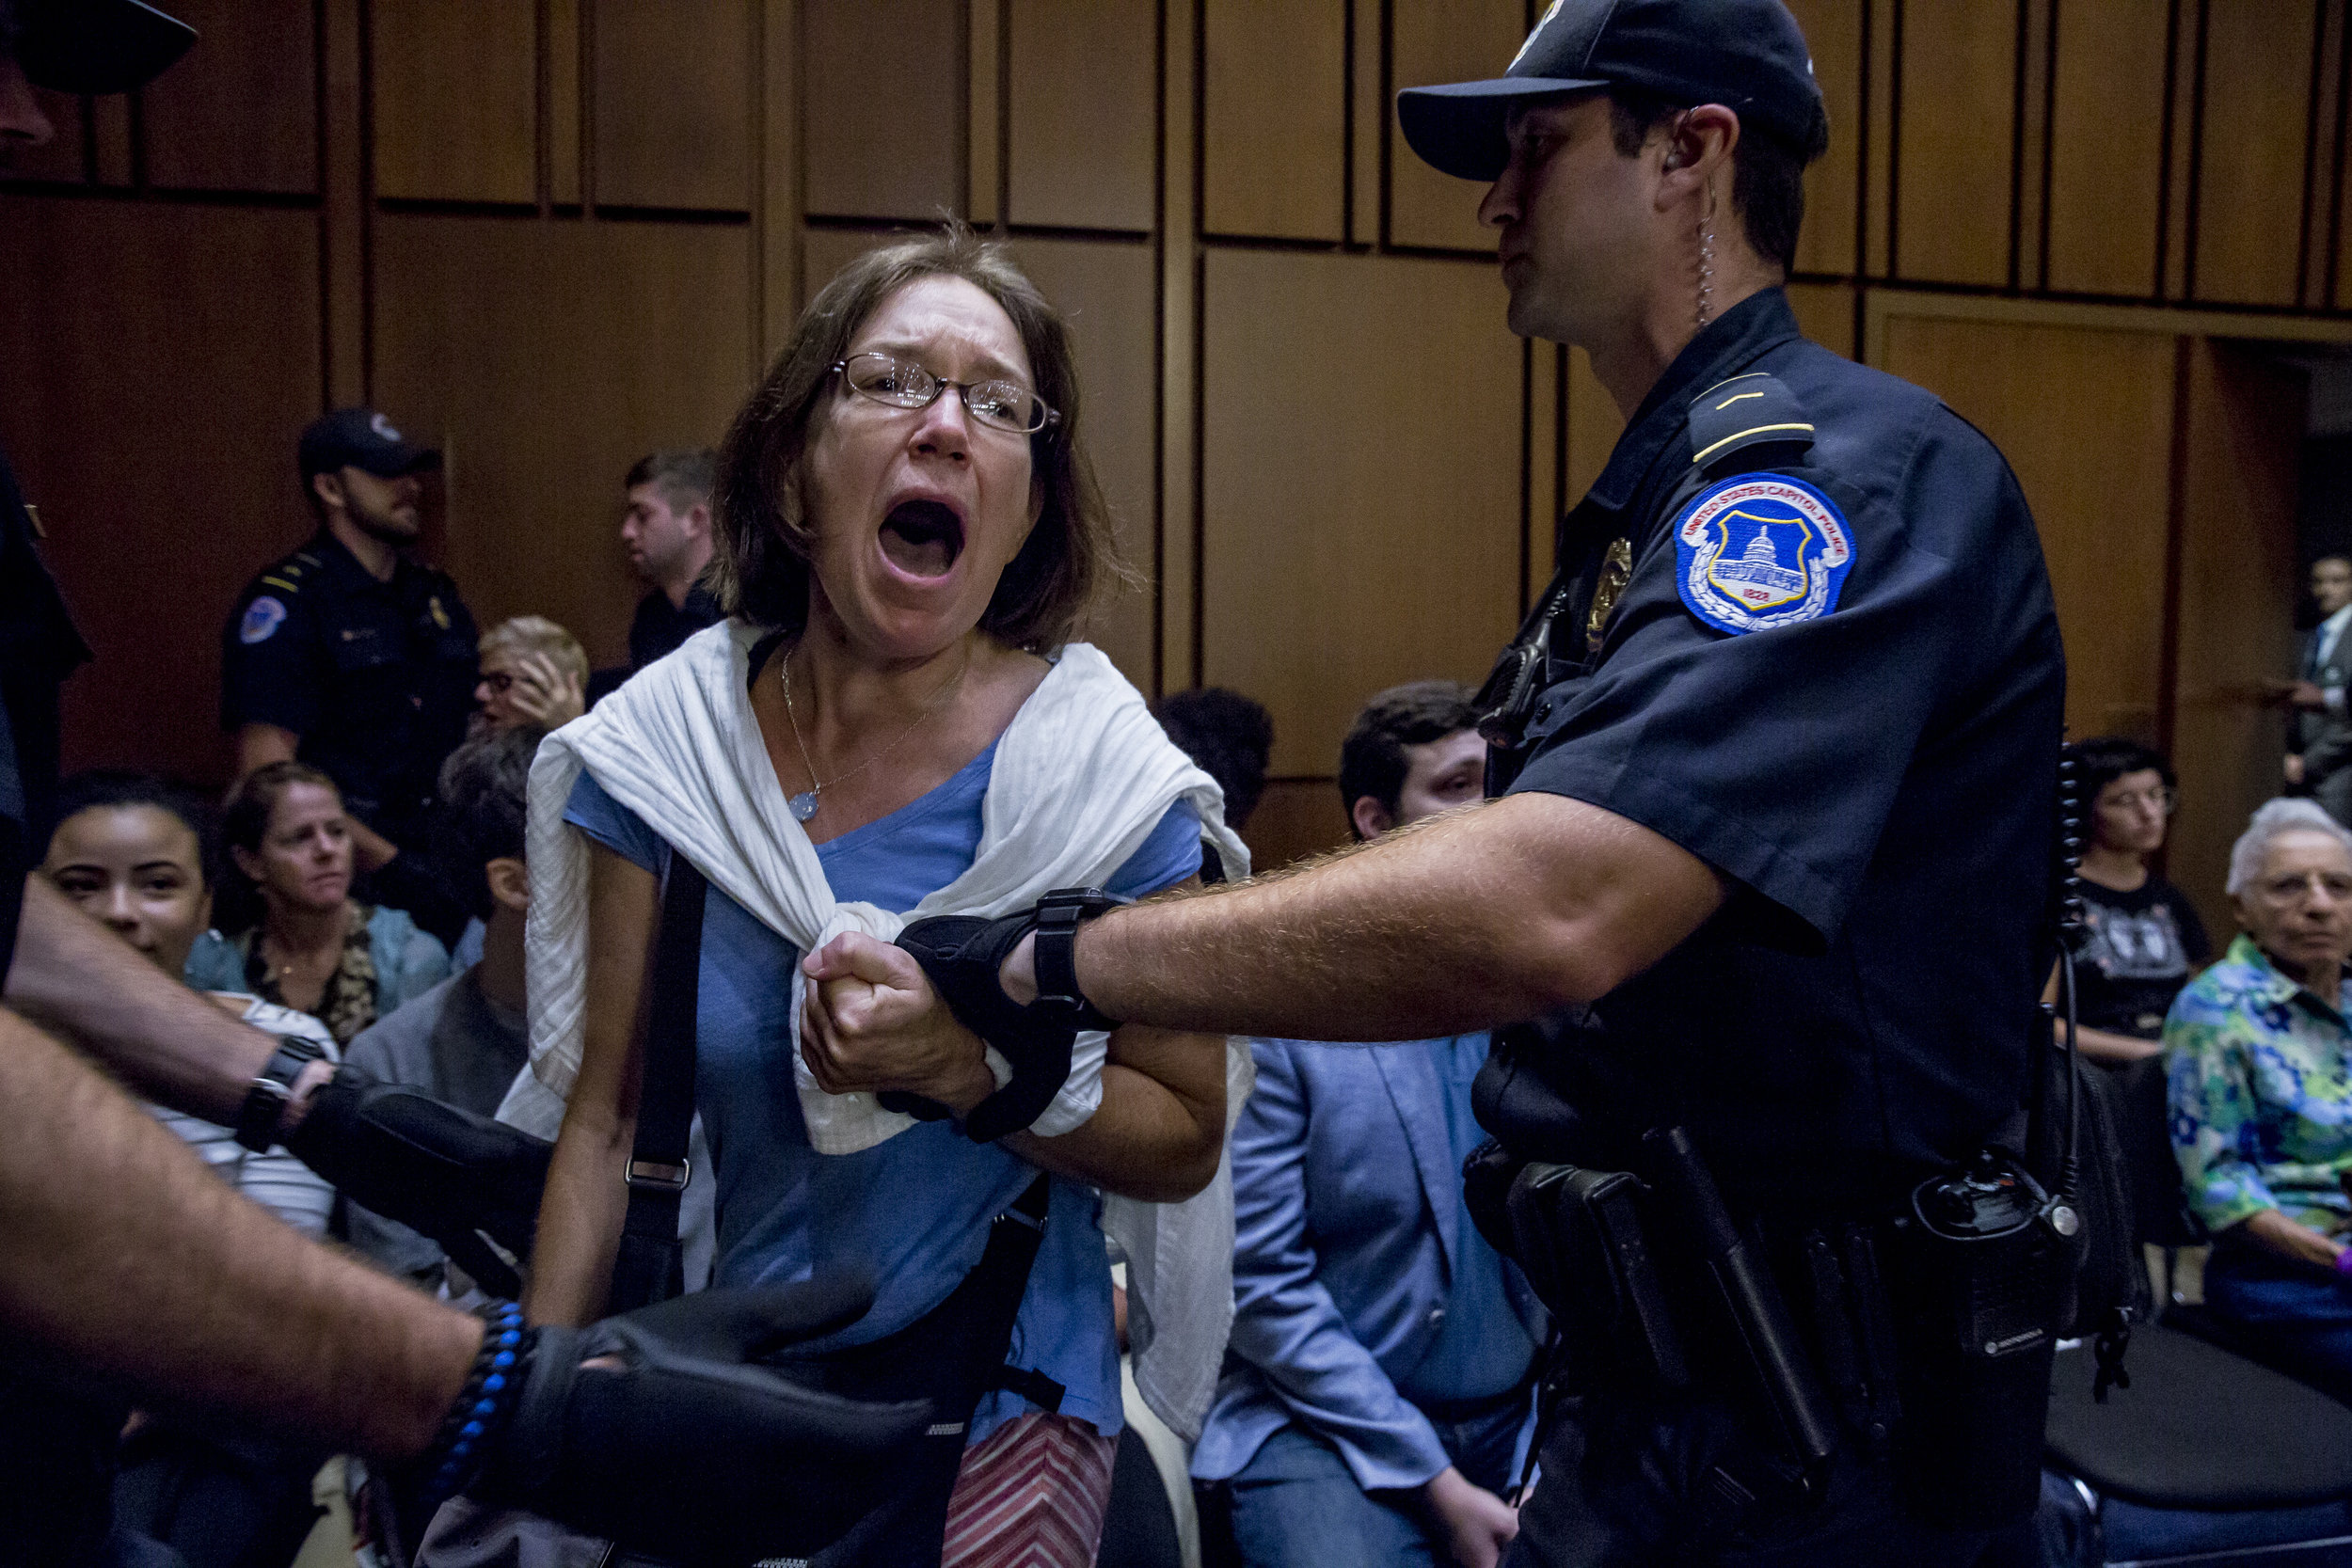 Protestors are removed from Senate Judiciary Committee hearing on September 5th, 2018